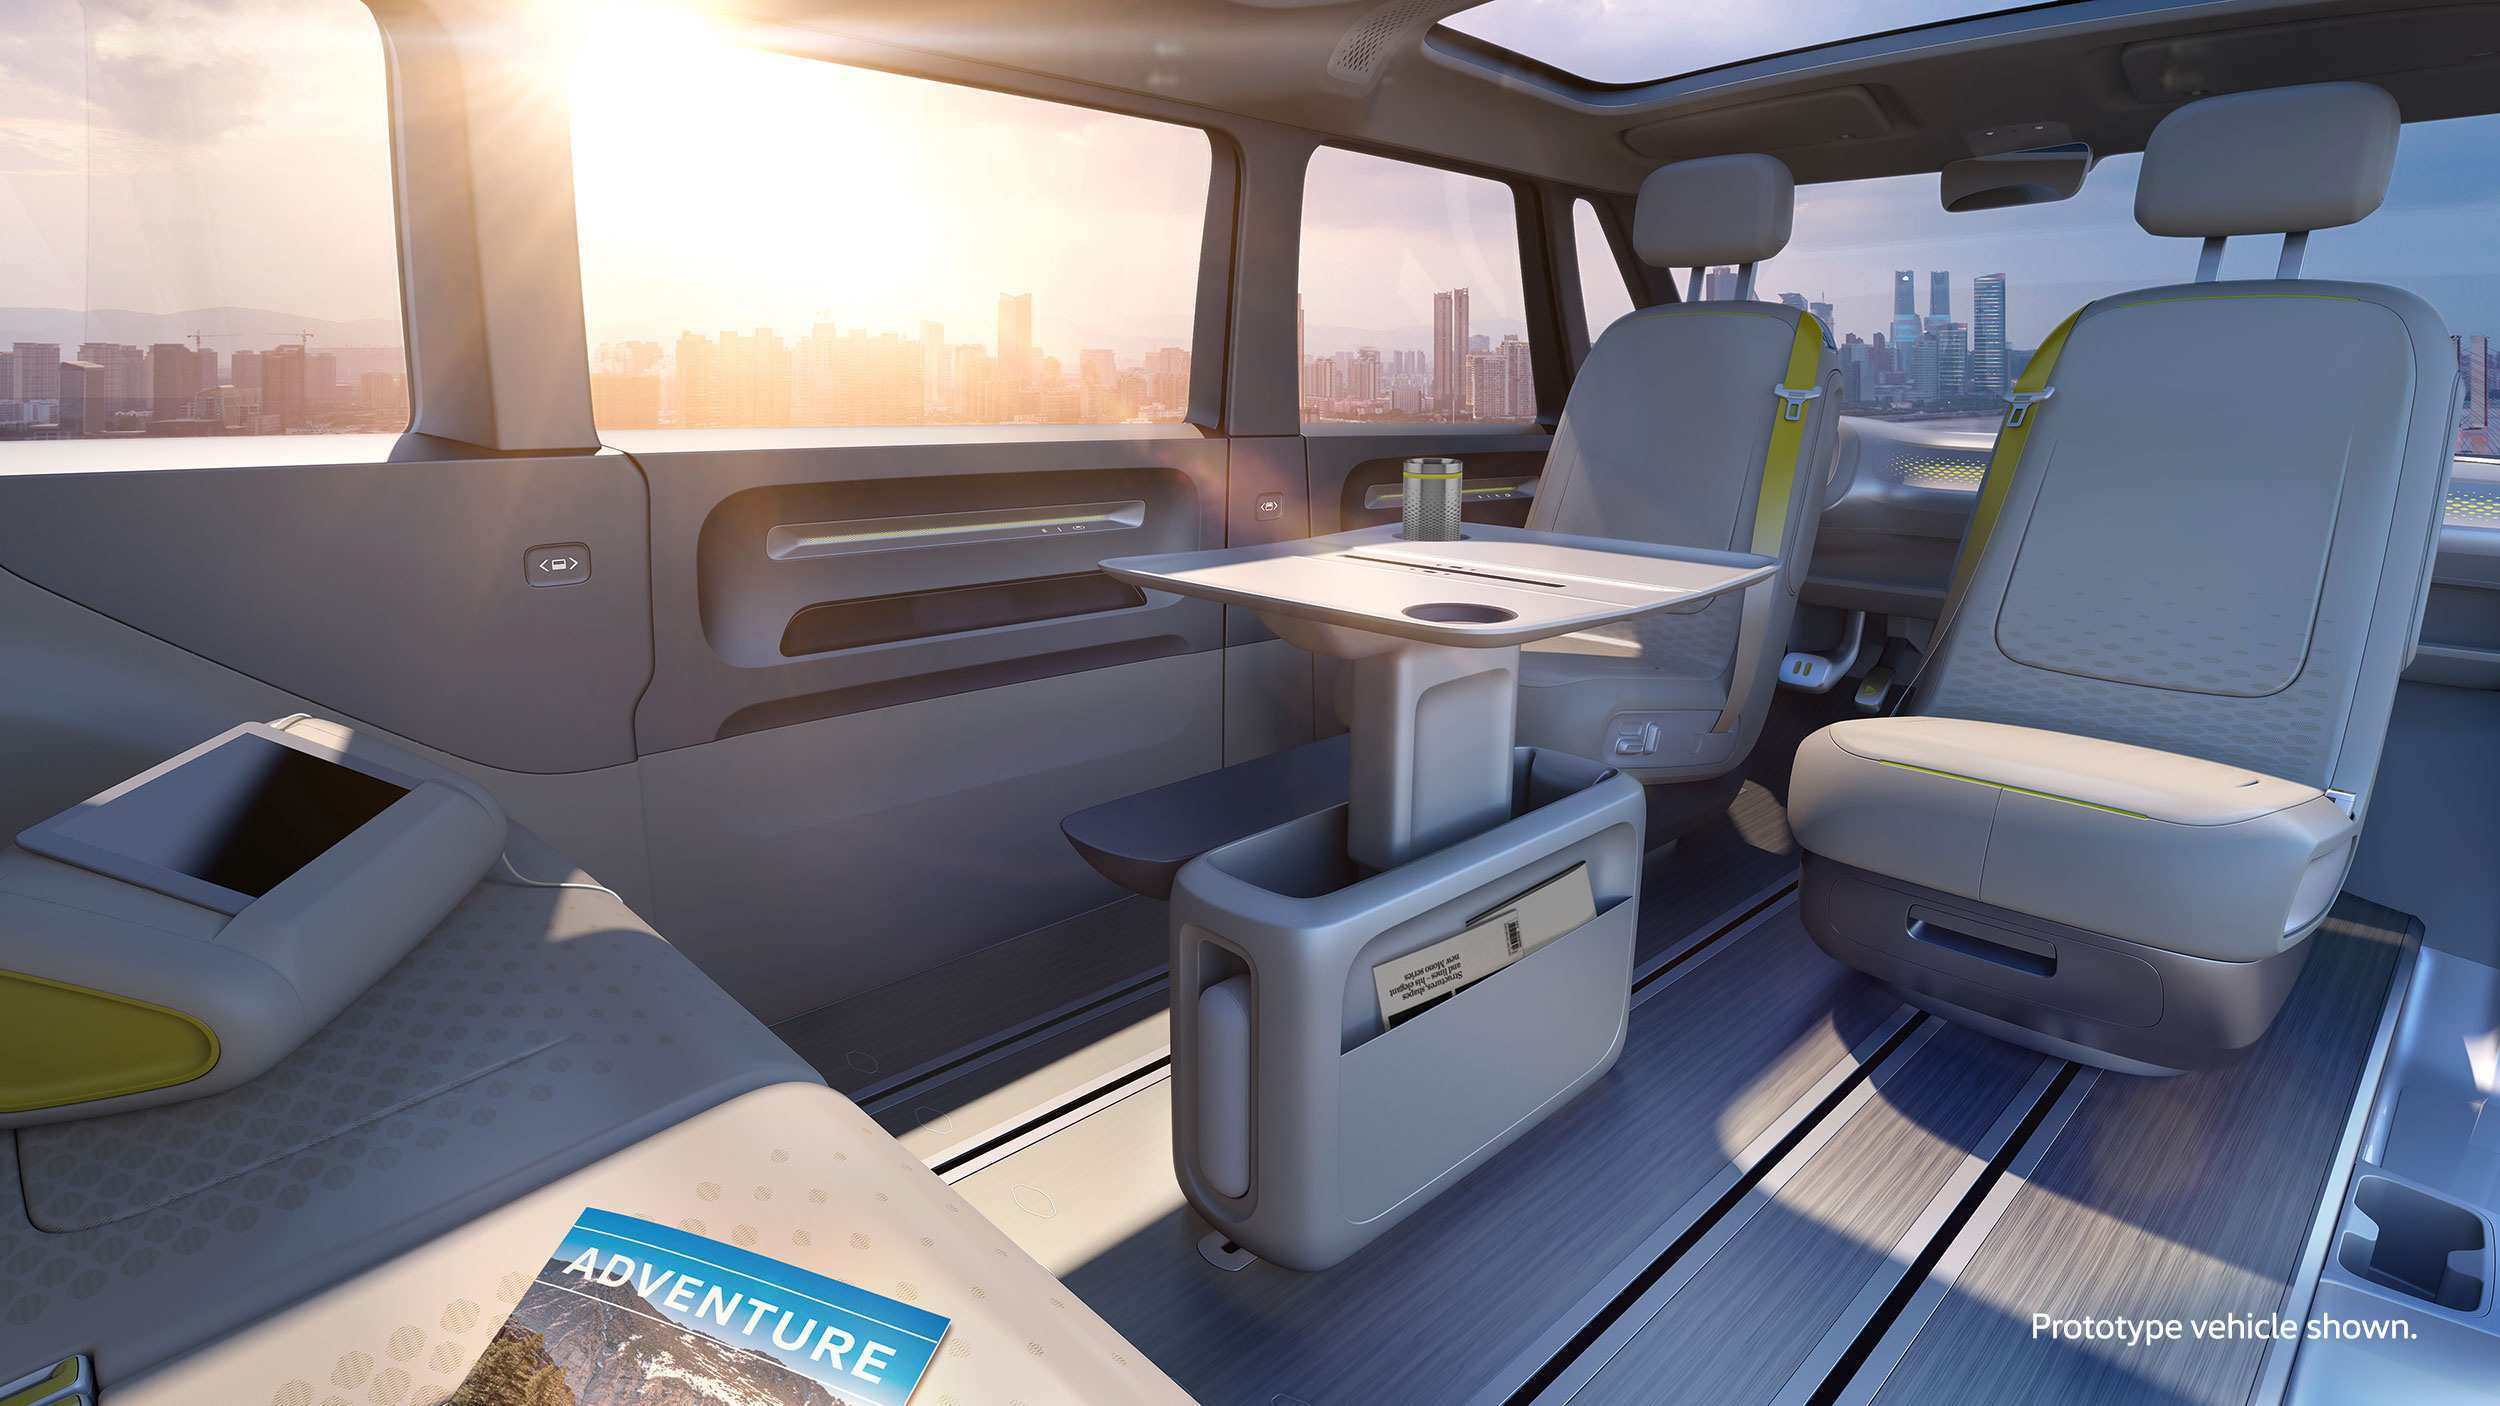 45 All New 2020 Vw Bus Price Engine with 2020 Vw Bus Price